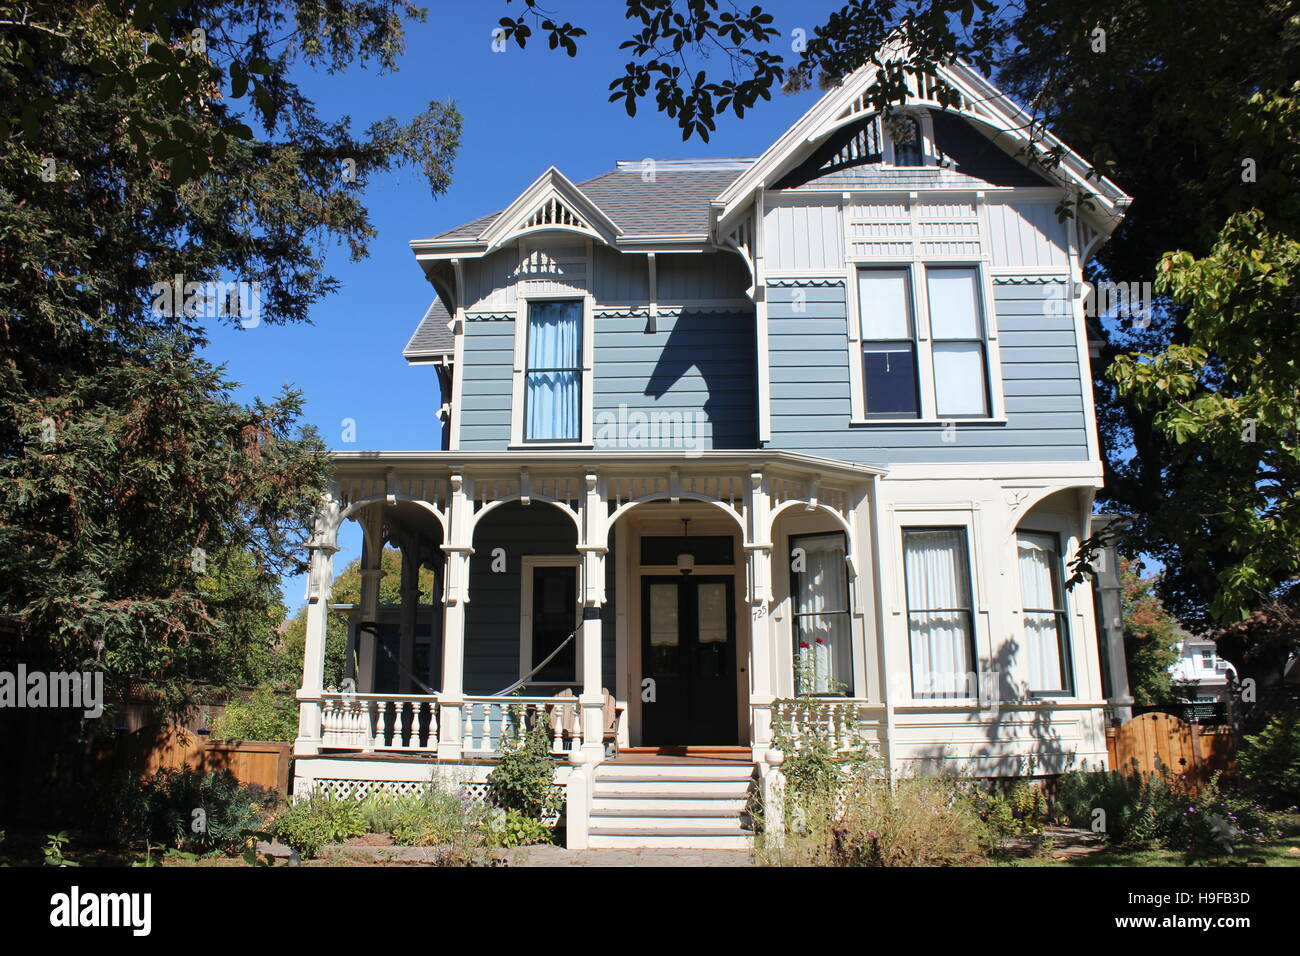 Eastlake or Stick-style House, Cherry Street, Santa Rosa, California - Stock Image